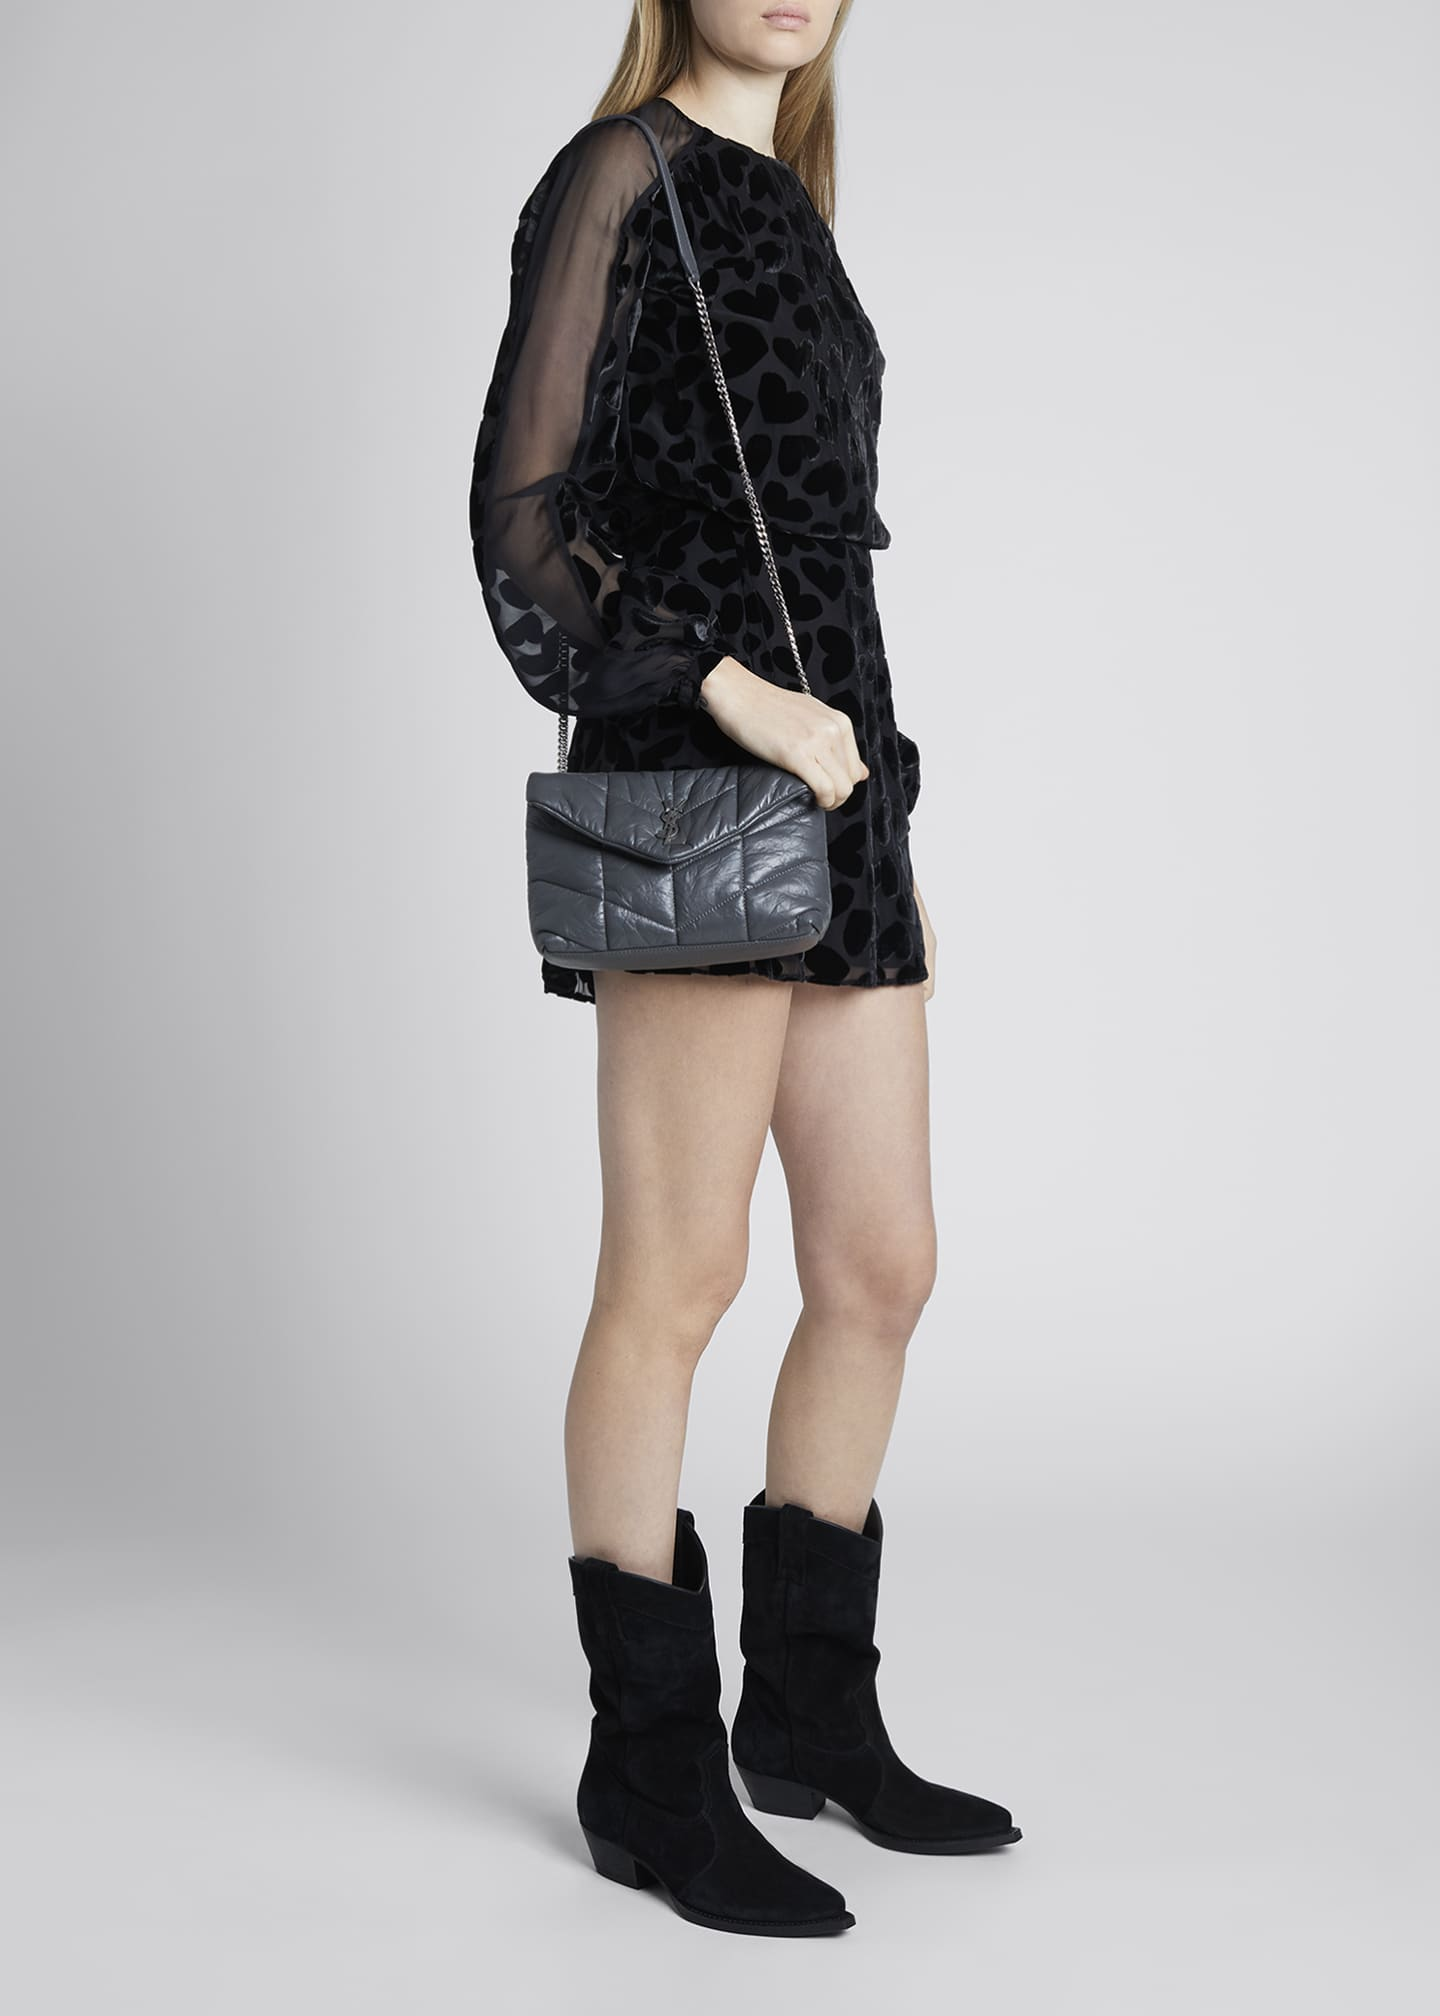 Image 5 of 5: LouLou Toy YSL Puffer Quilted Matte Leather Crossbody Bag